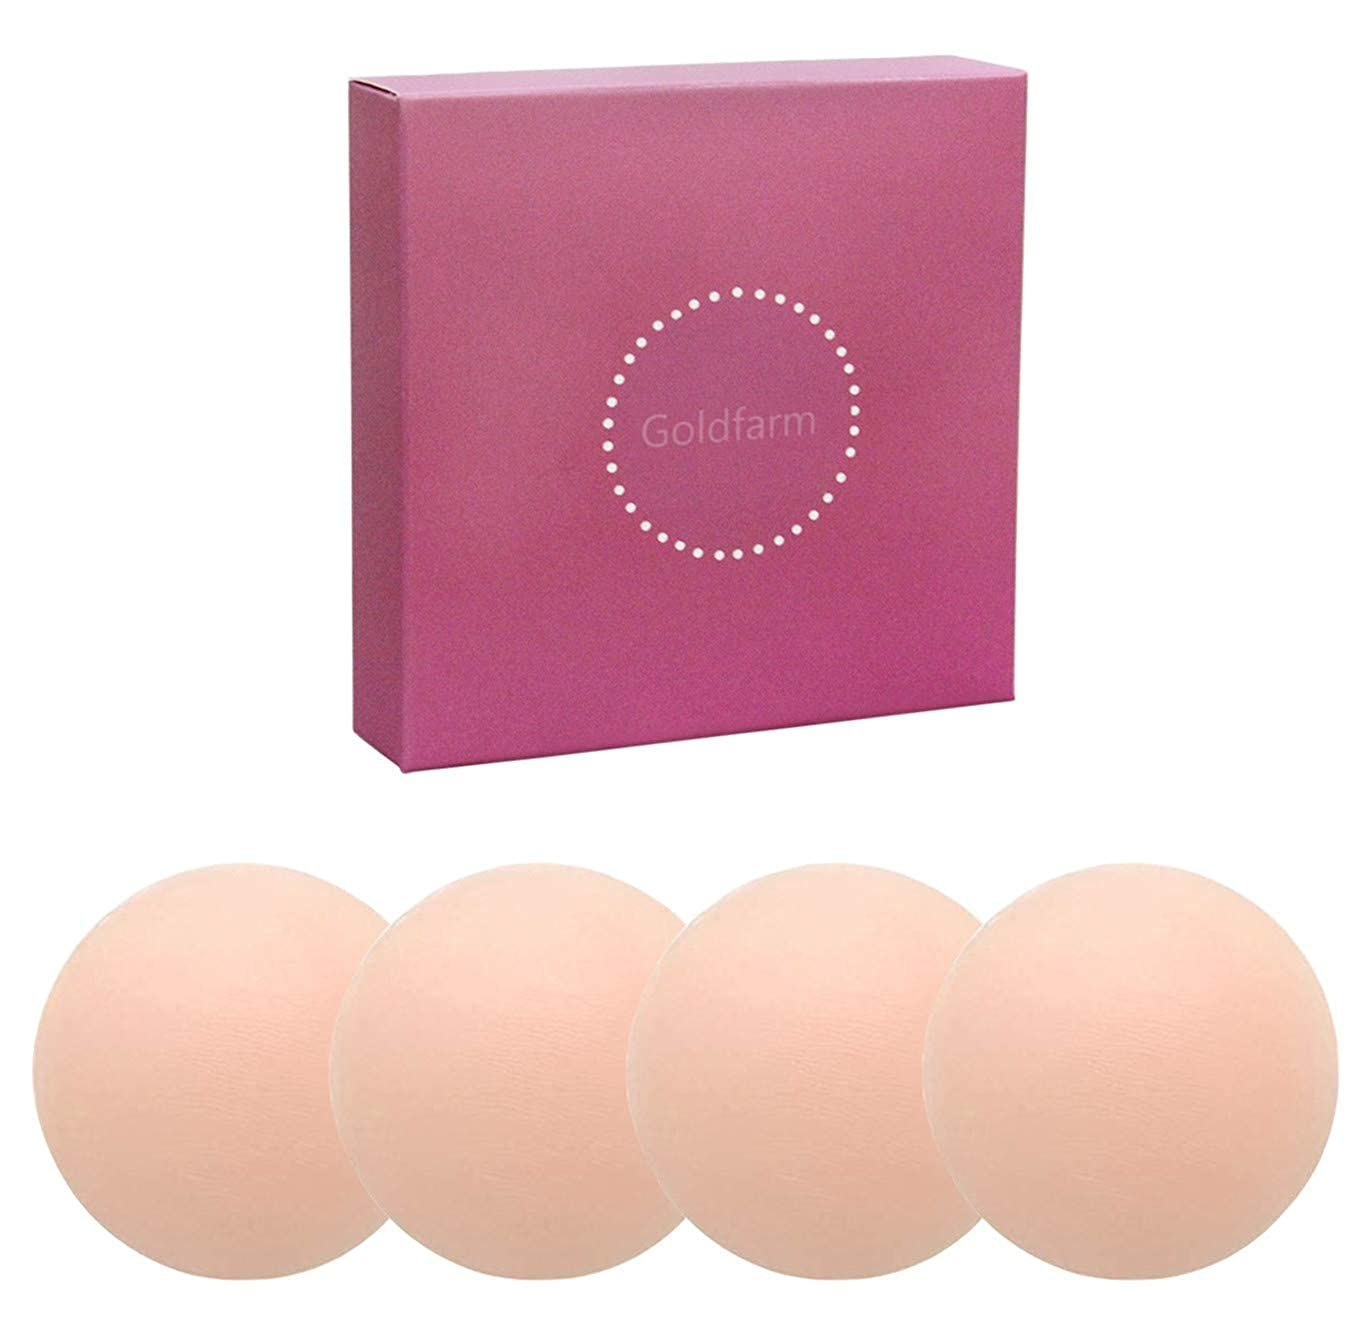 NippleCovers, Pasties, Silicone Nippleless Cover Reusable Breast Pasties (2 Pairs Round 2019 Version)